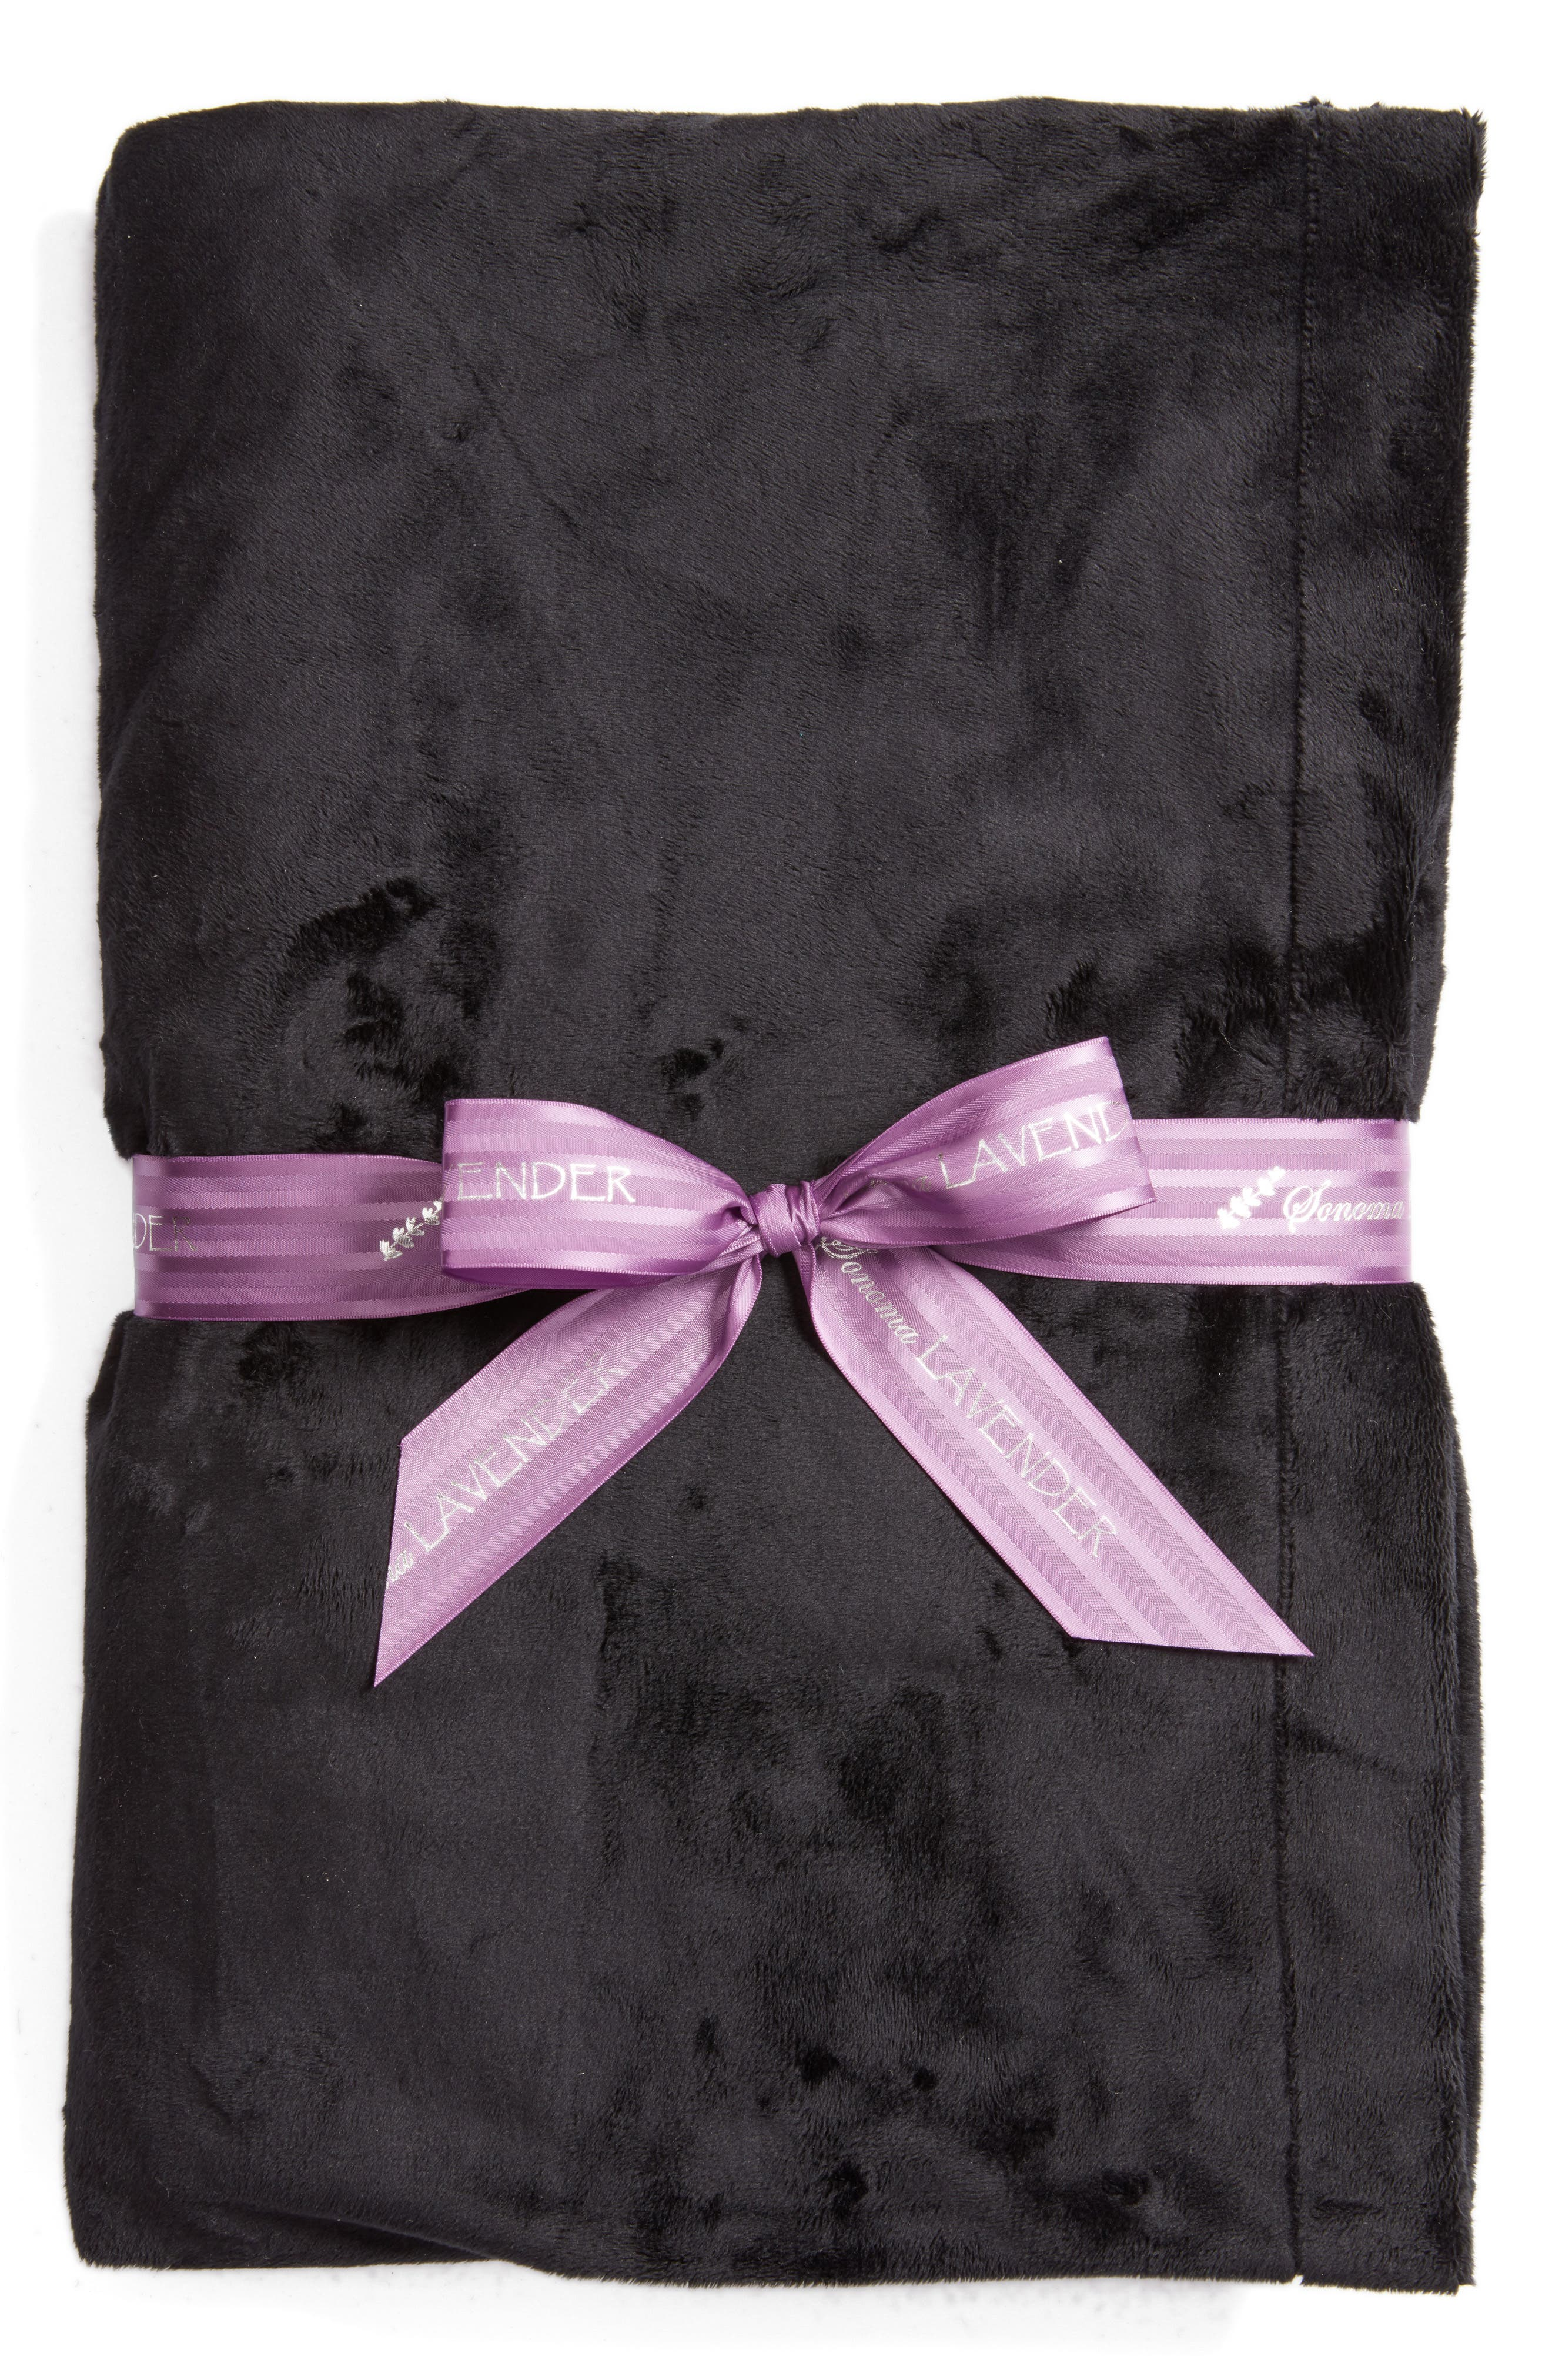 Solid Black Blankie,                             Main thumbnail 1, color,                             000